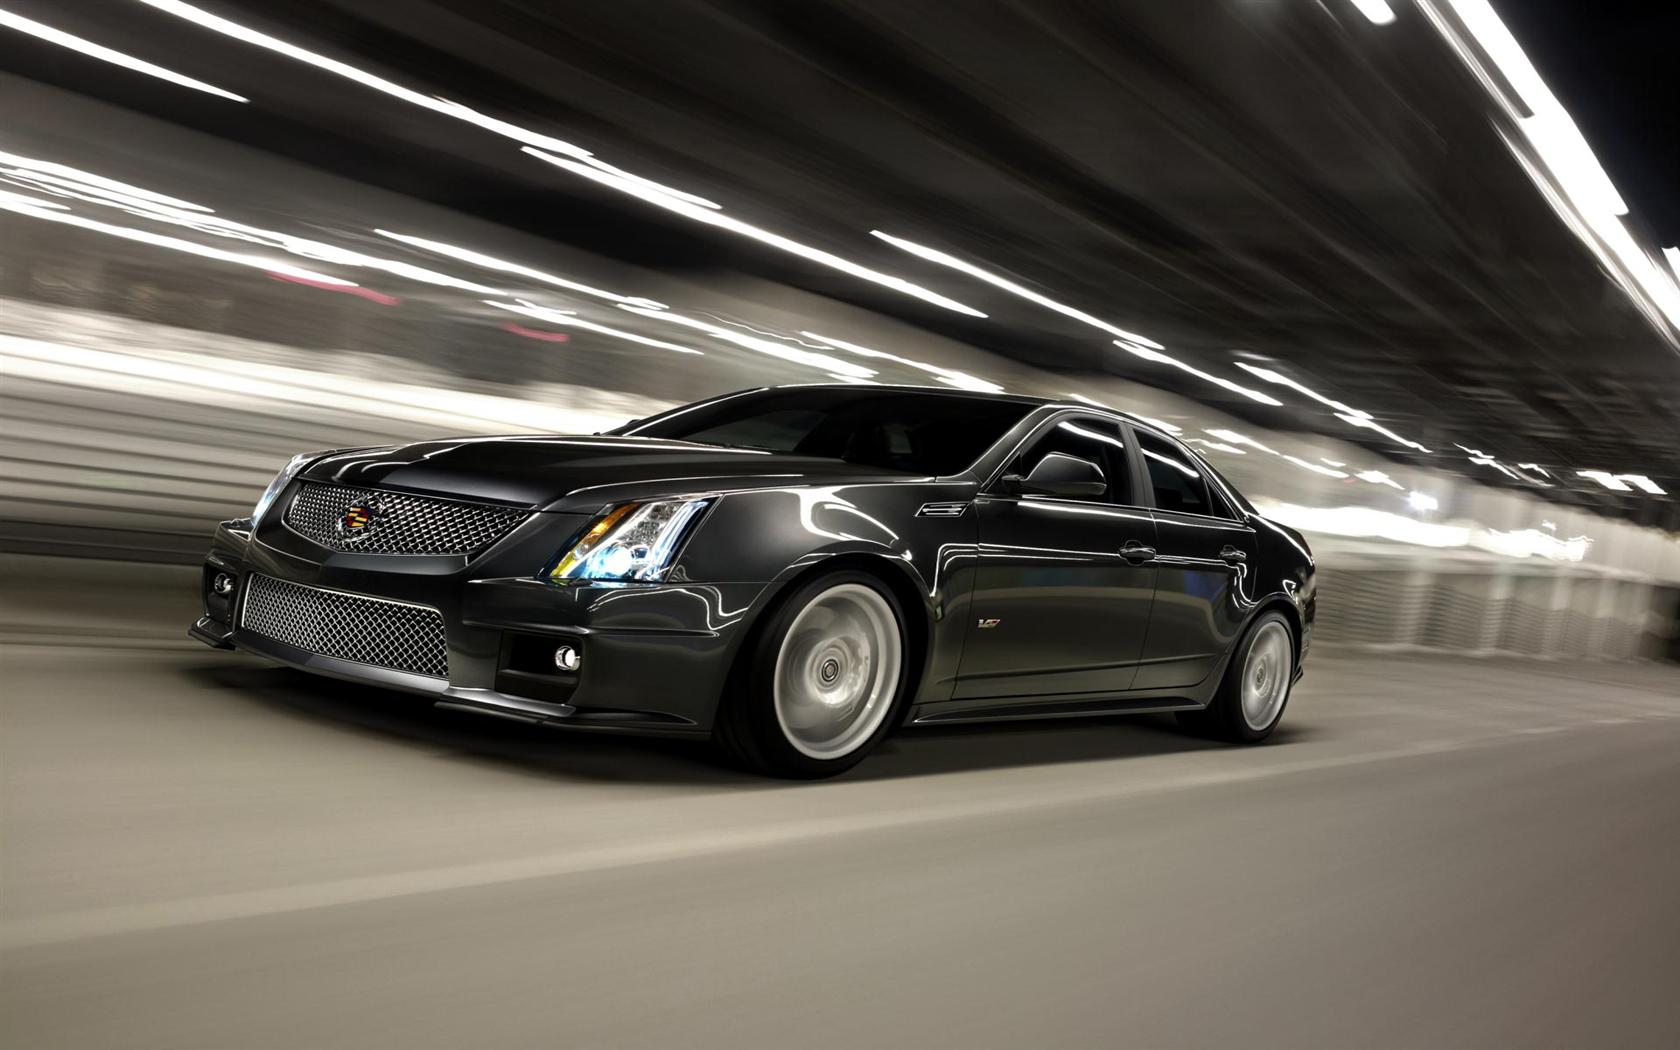 2014 cadillac cts v sedan images photo 2014 cadillac cts. Black Bedroom Furniture Sets. Home Design Ideas